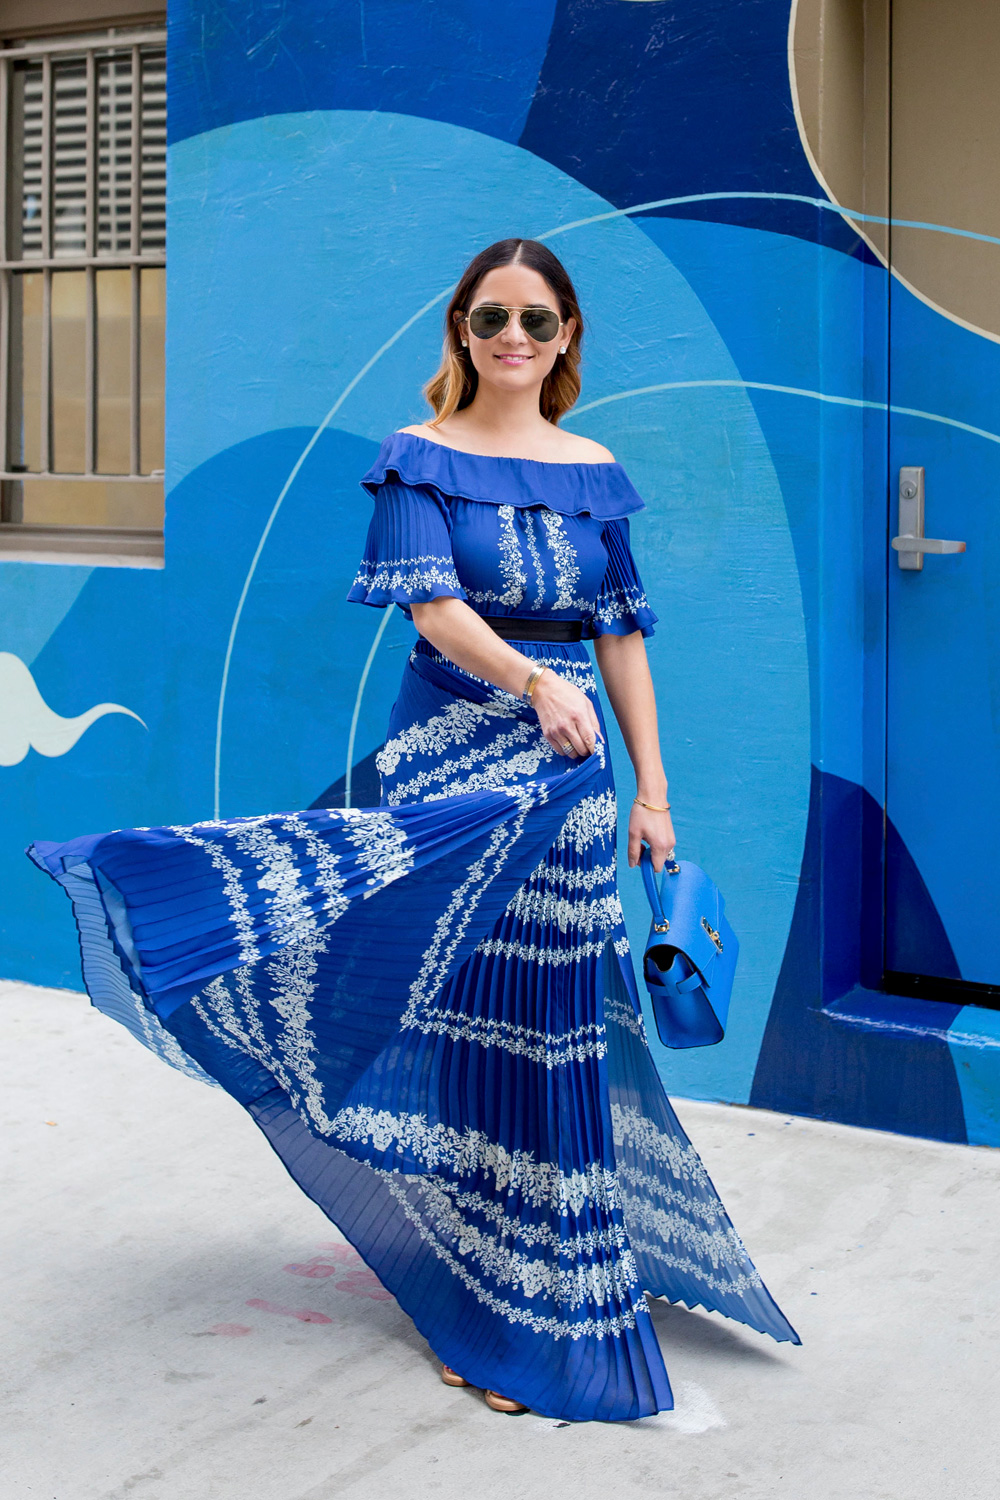 Jennifer Lake Style Charade twirling in a blue pleated Self Portrait maxi dress, and blue Henri Bendel bag at a blue swirl mural wall